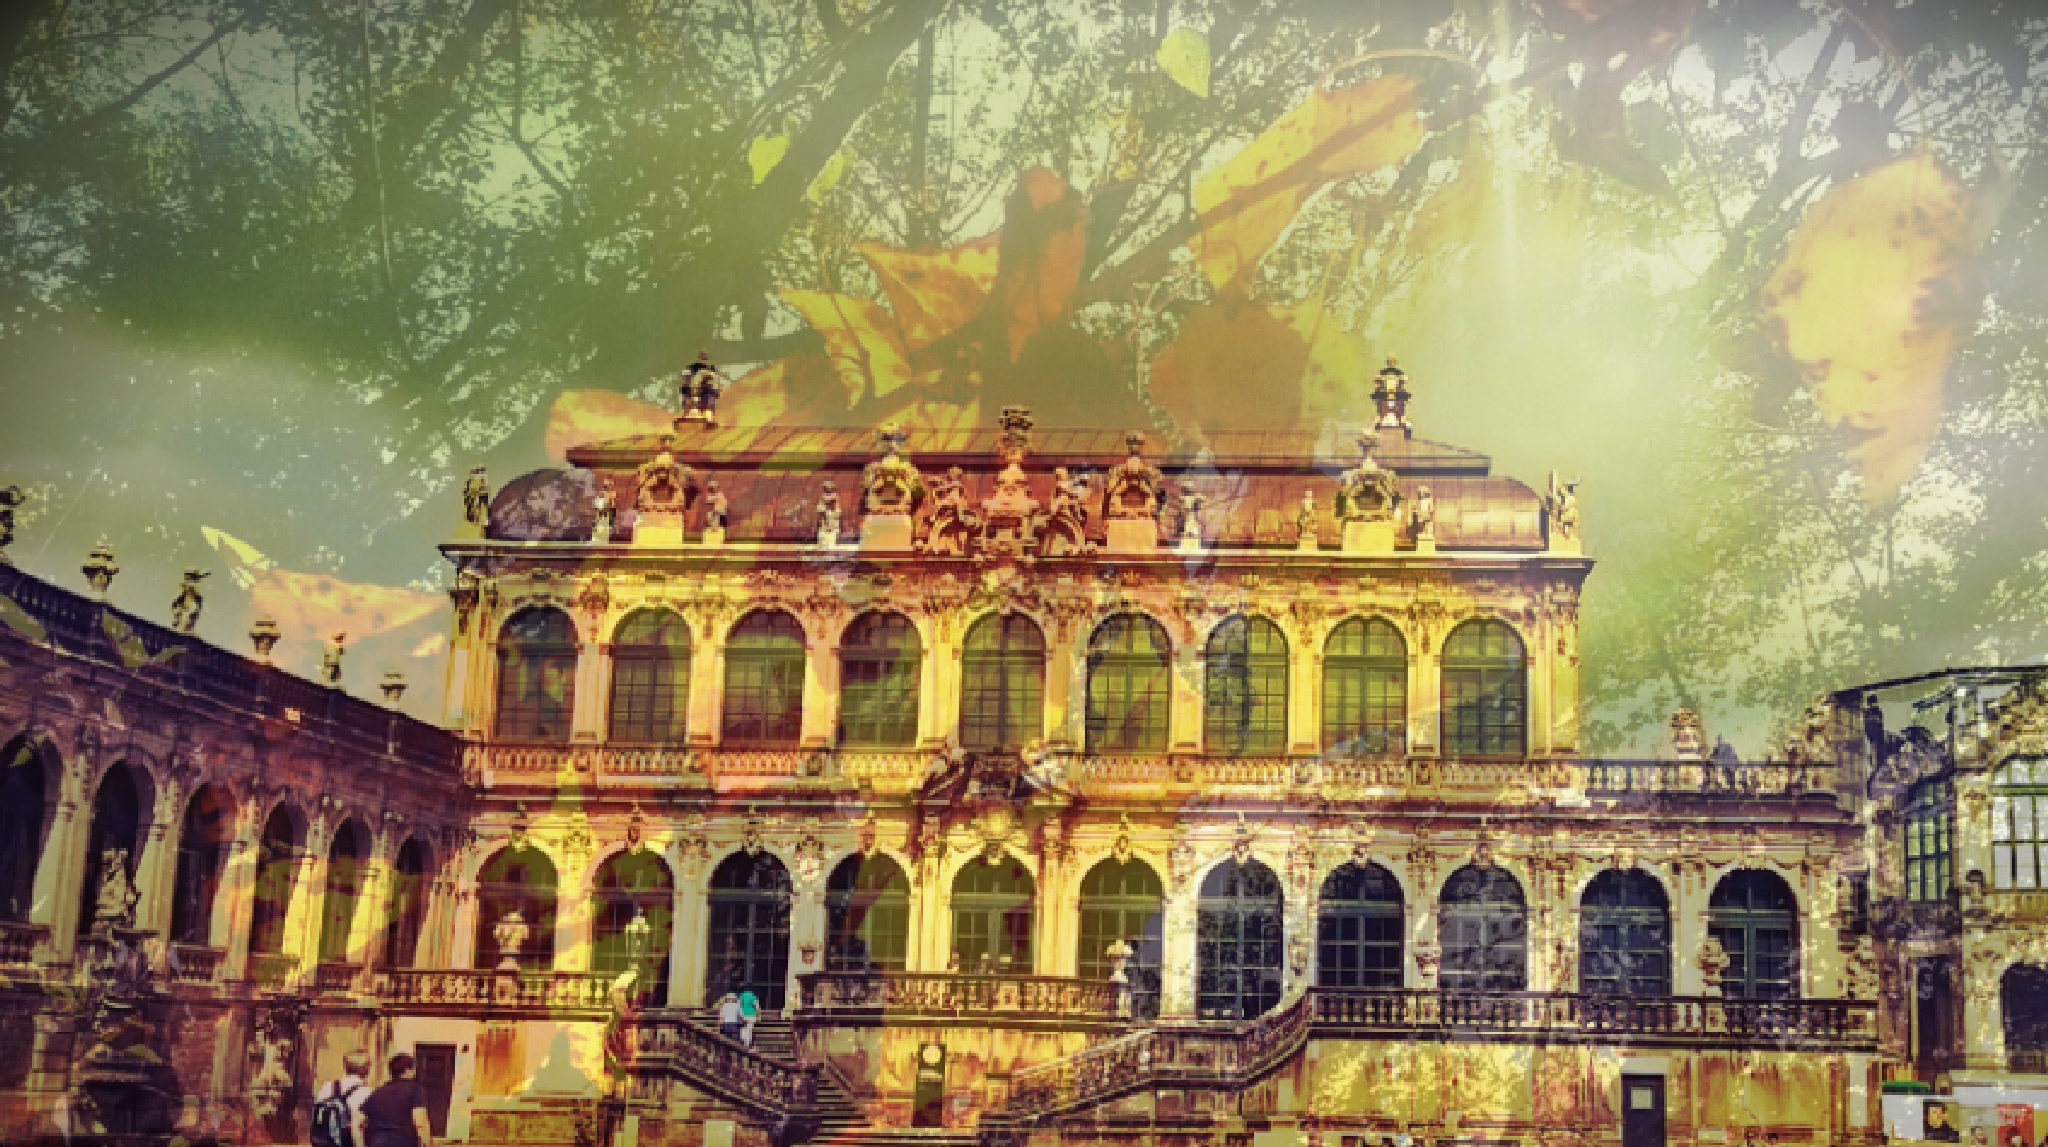 Autumn at Zwinger castle by Autumn Leaves